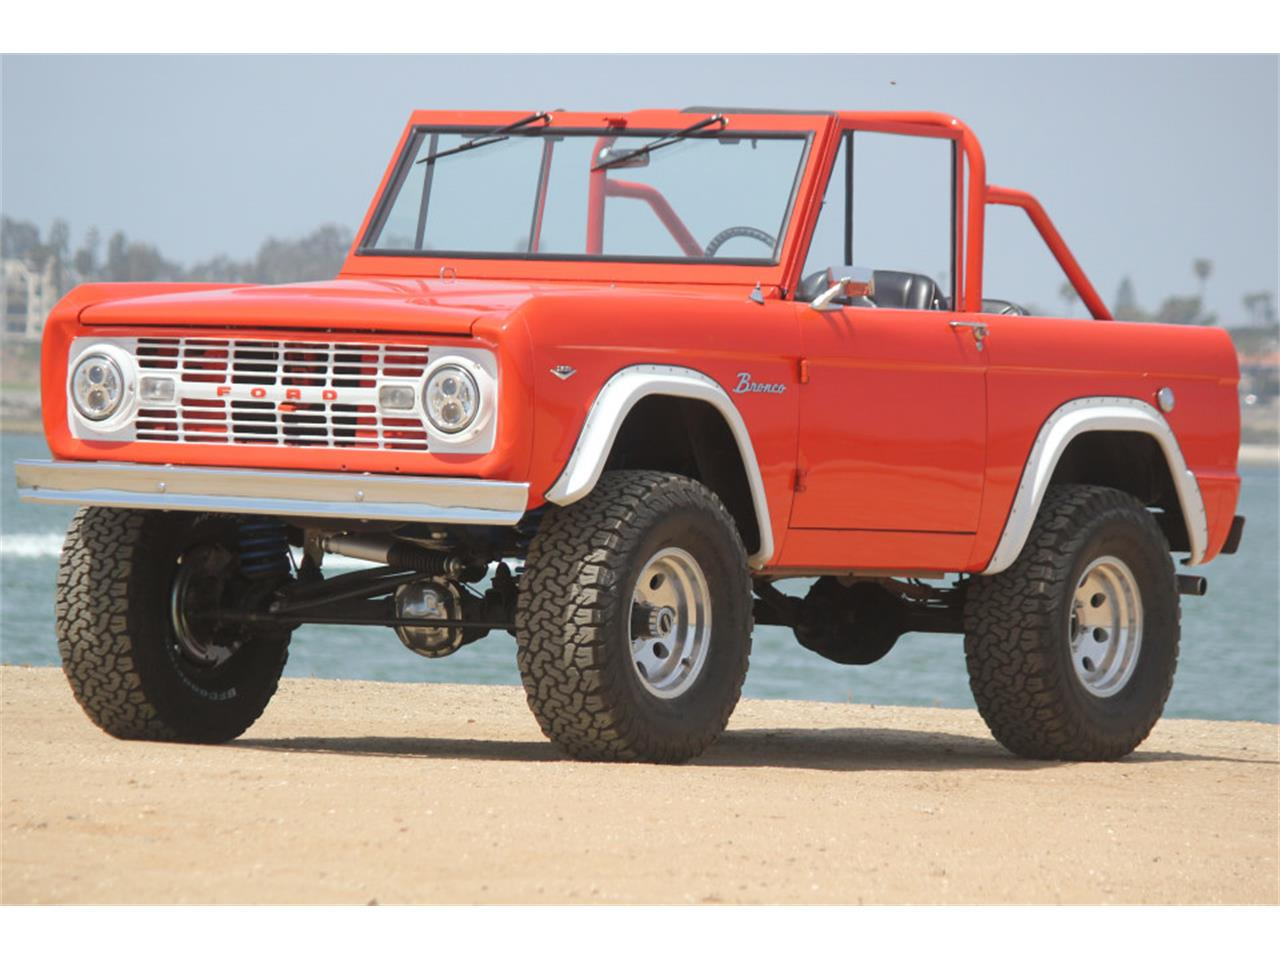 Large picture of 1967 bronco located in san diego california 47500 00 offered by precious metals